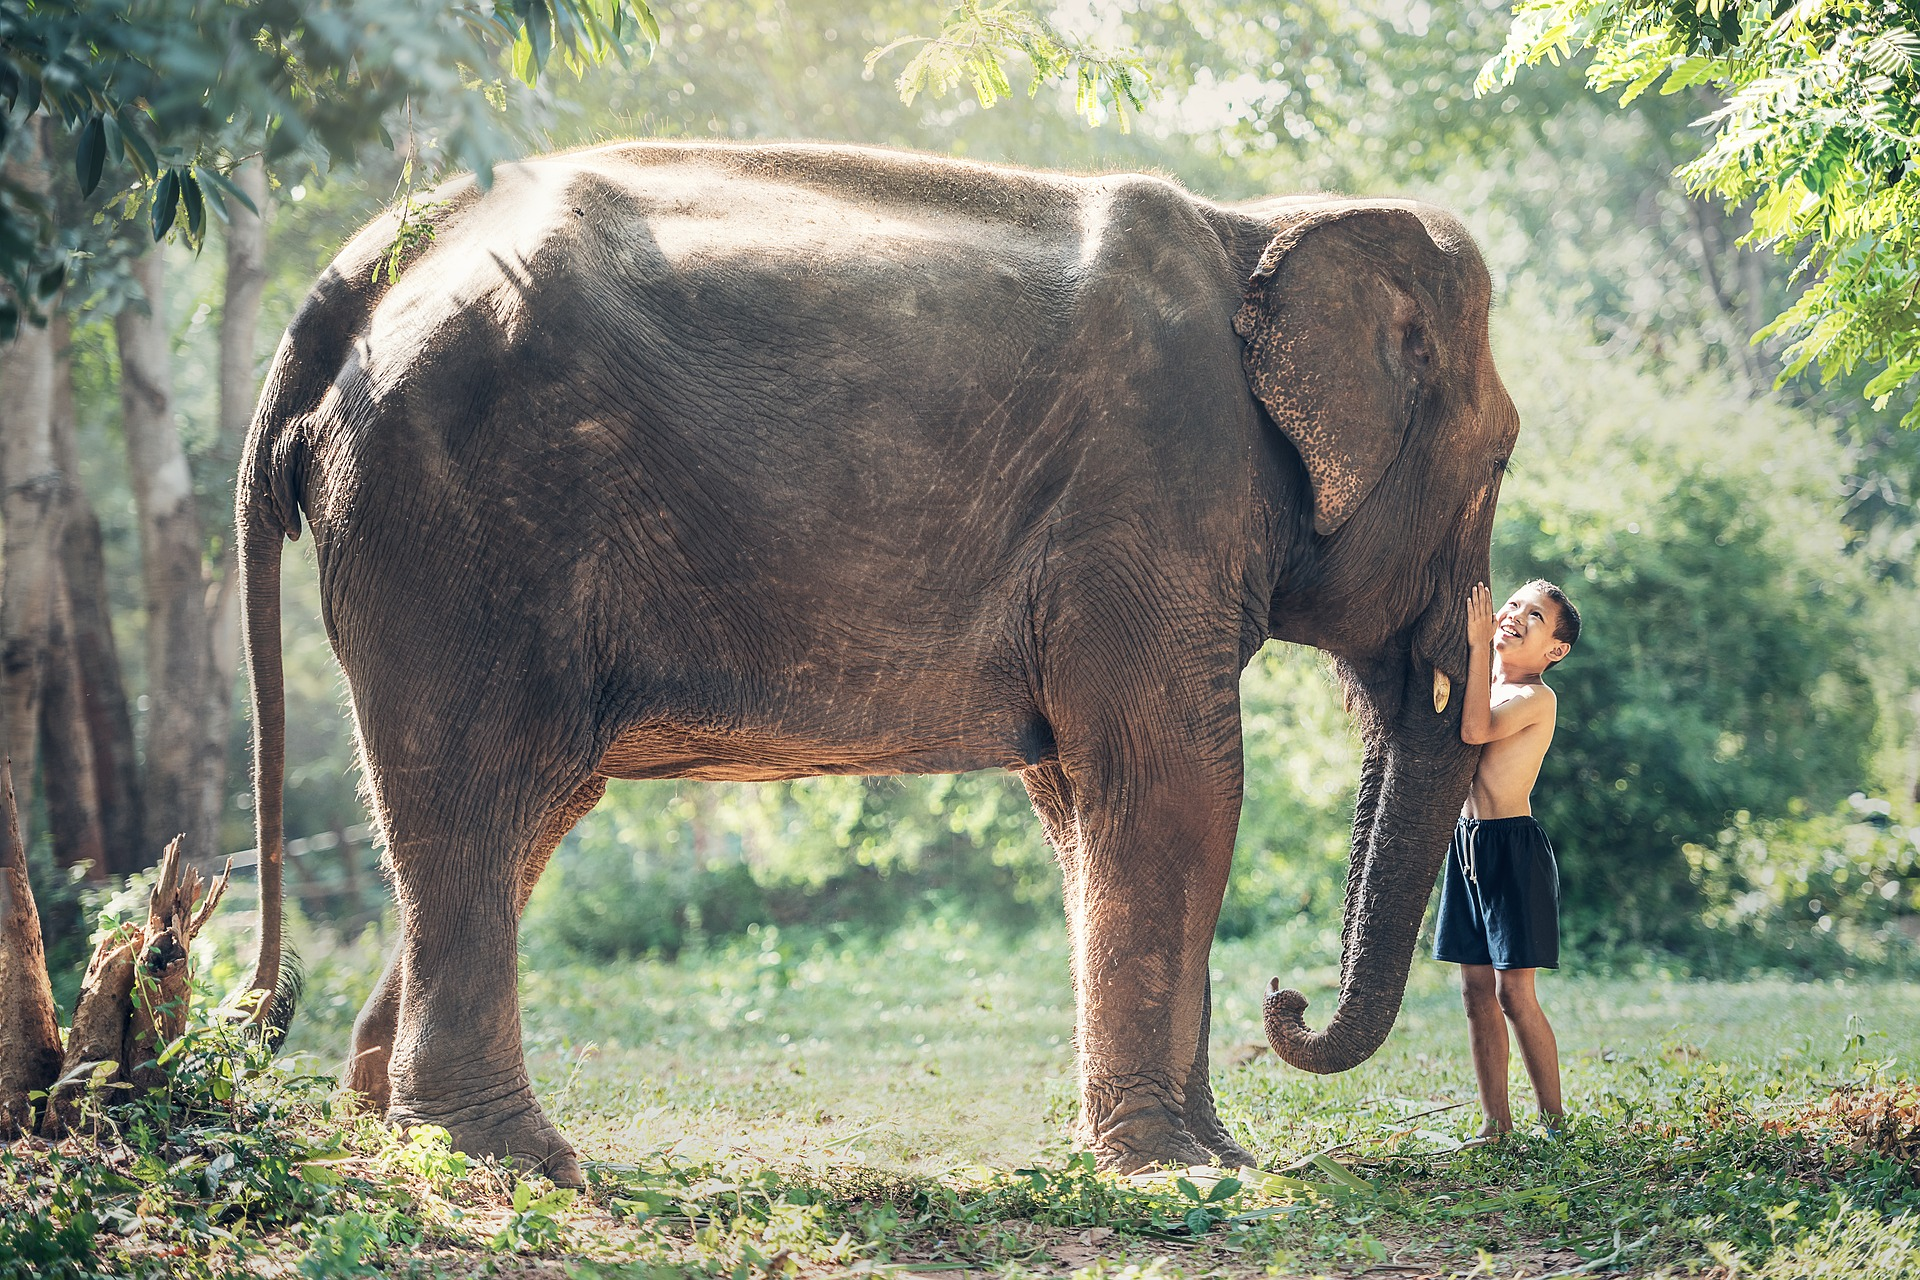 Elephant and young boy